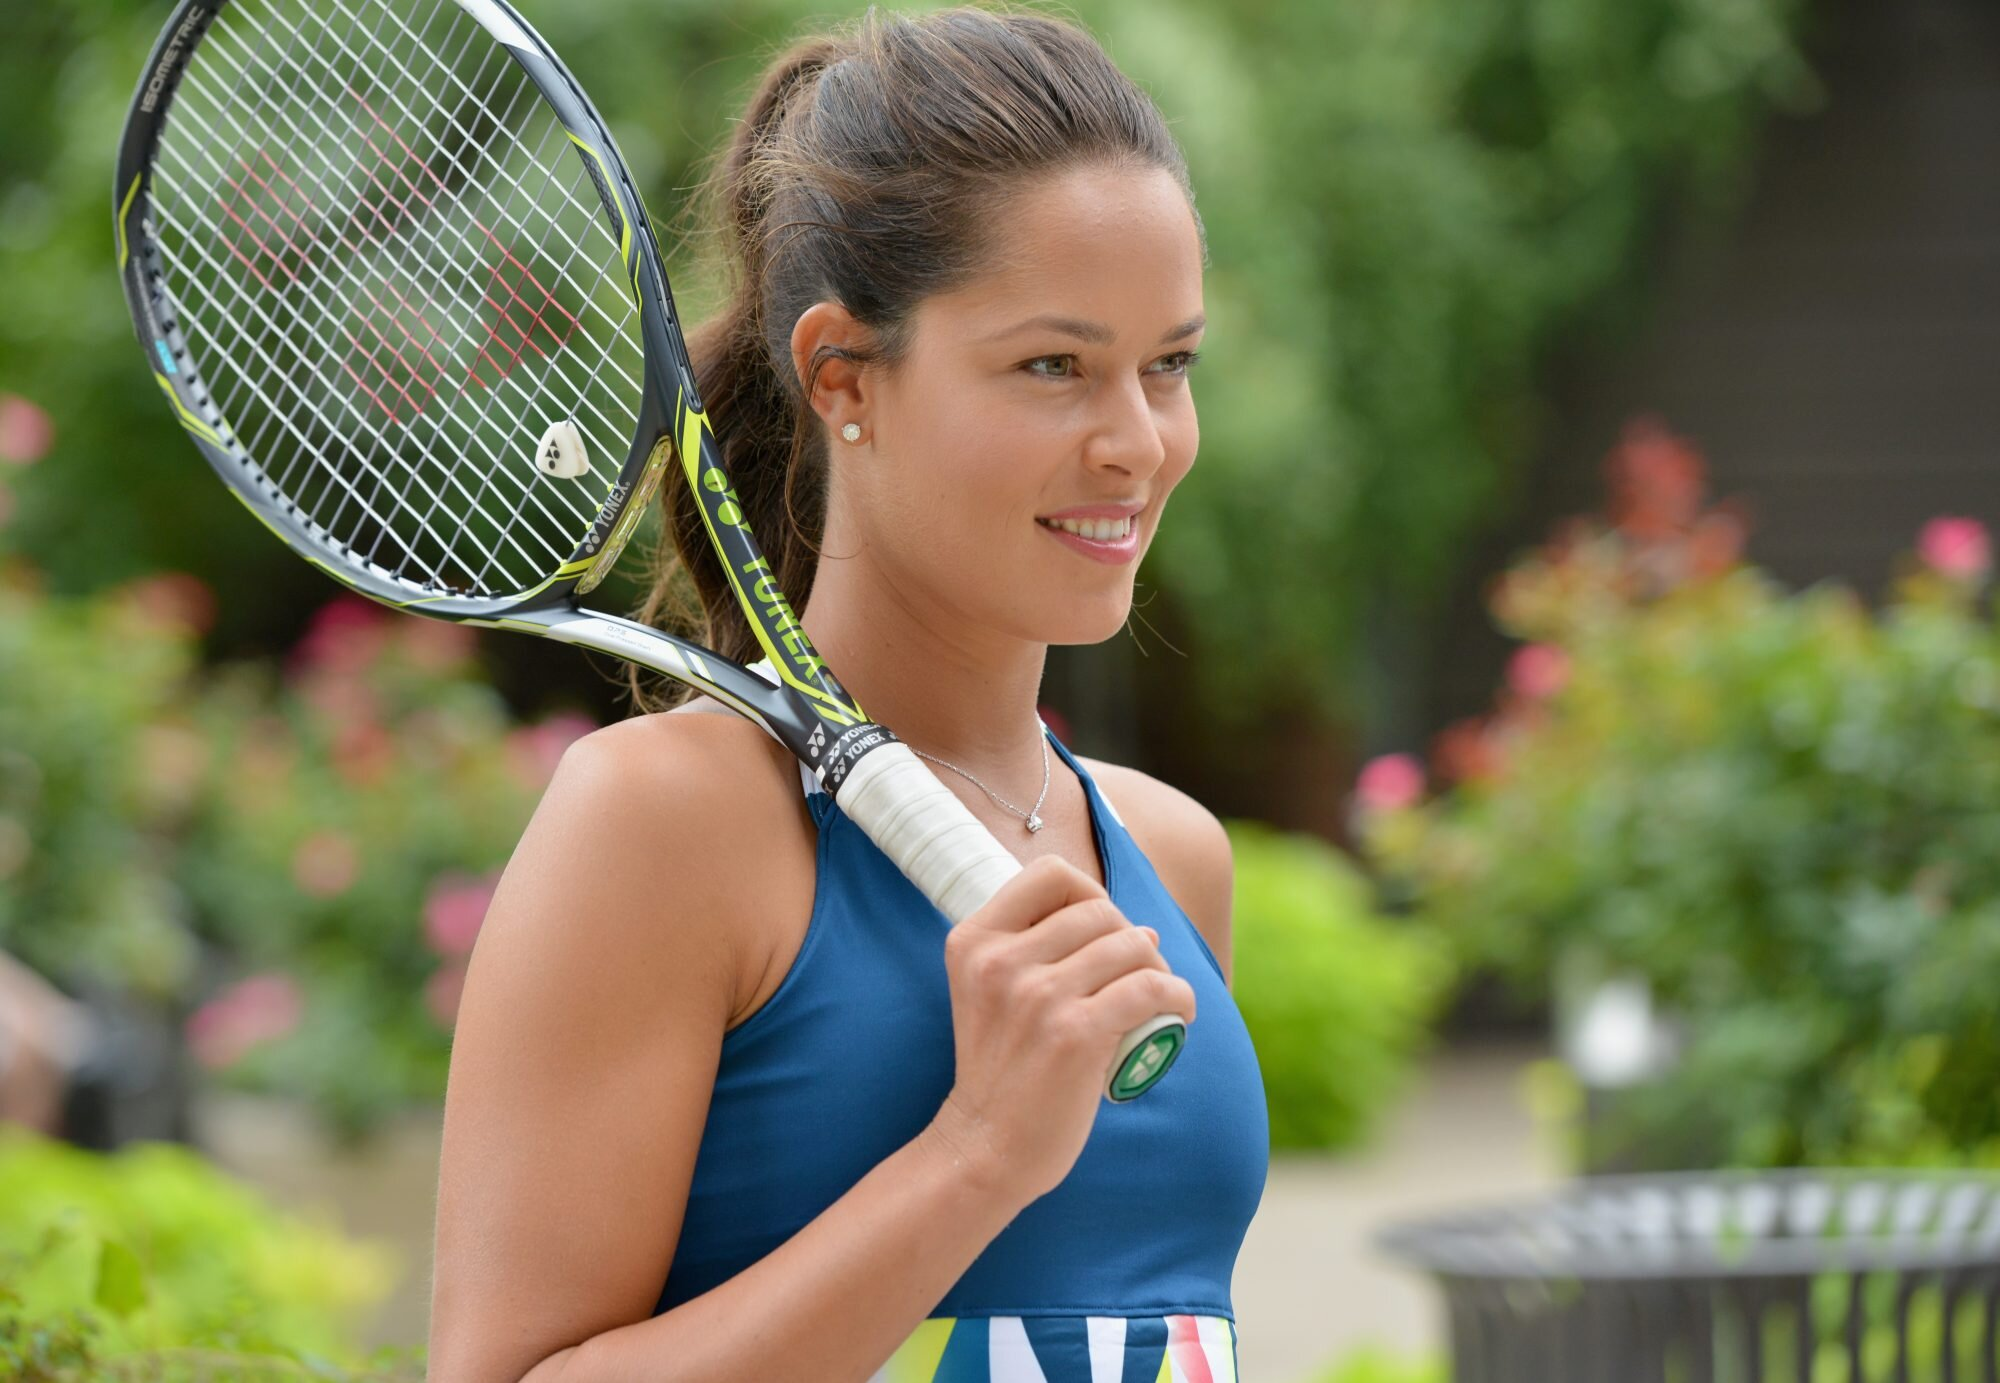 Ana Ivanovic Breasts here are tennis star ana ivanovic's diet and fitness secrets